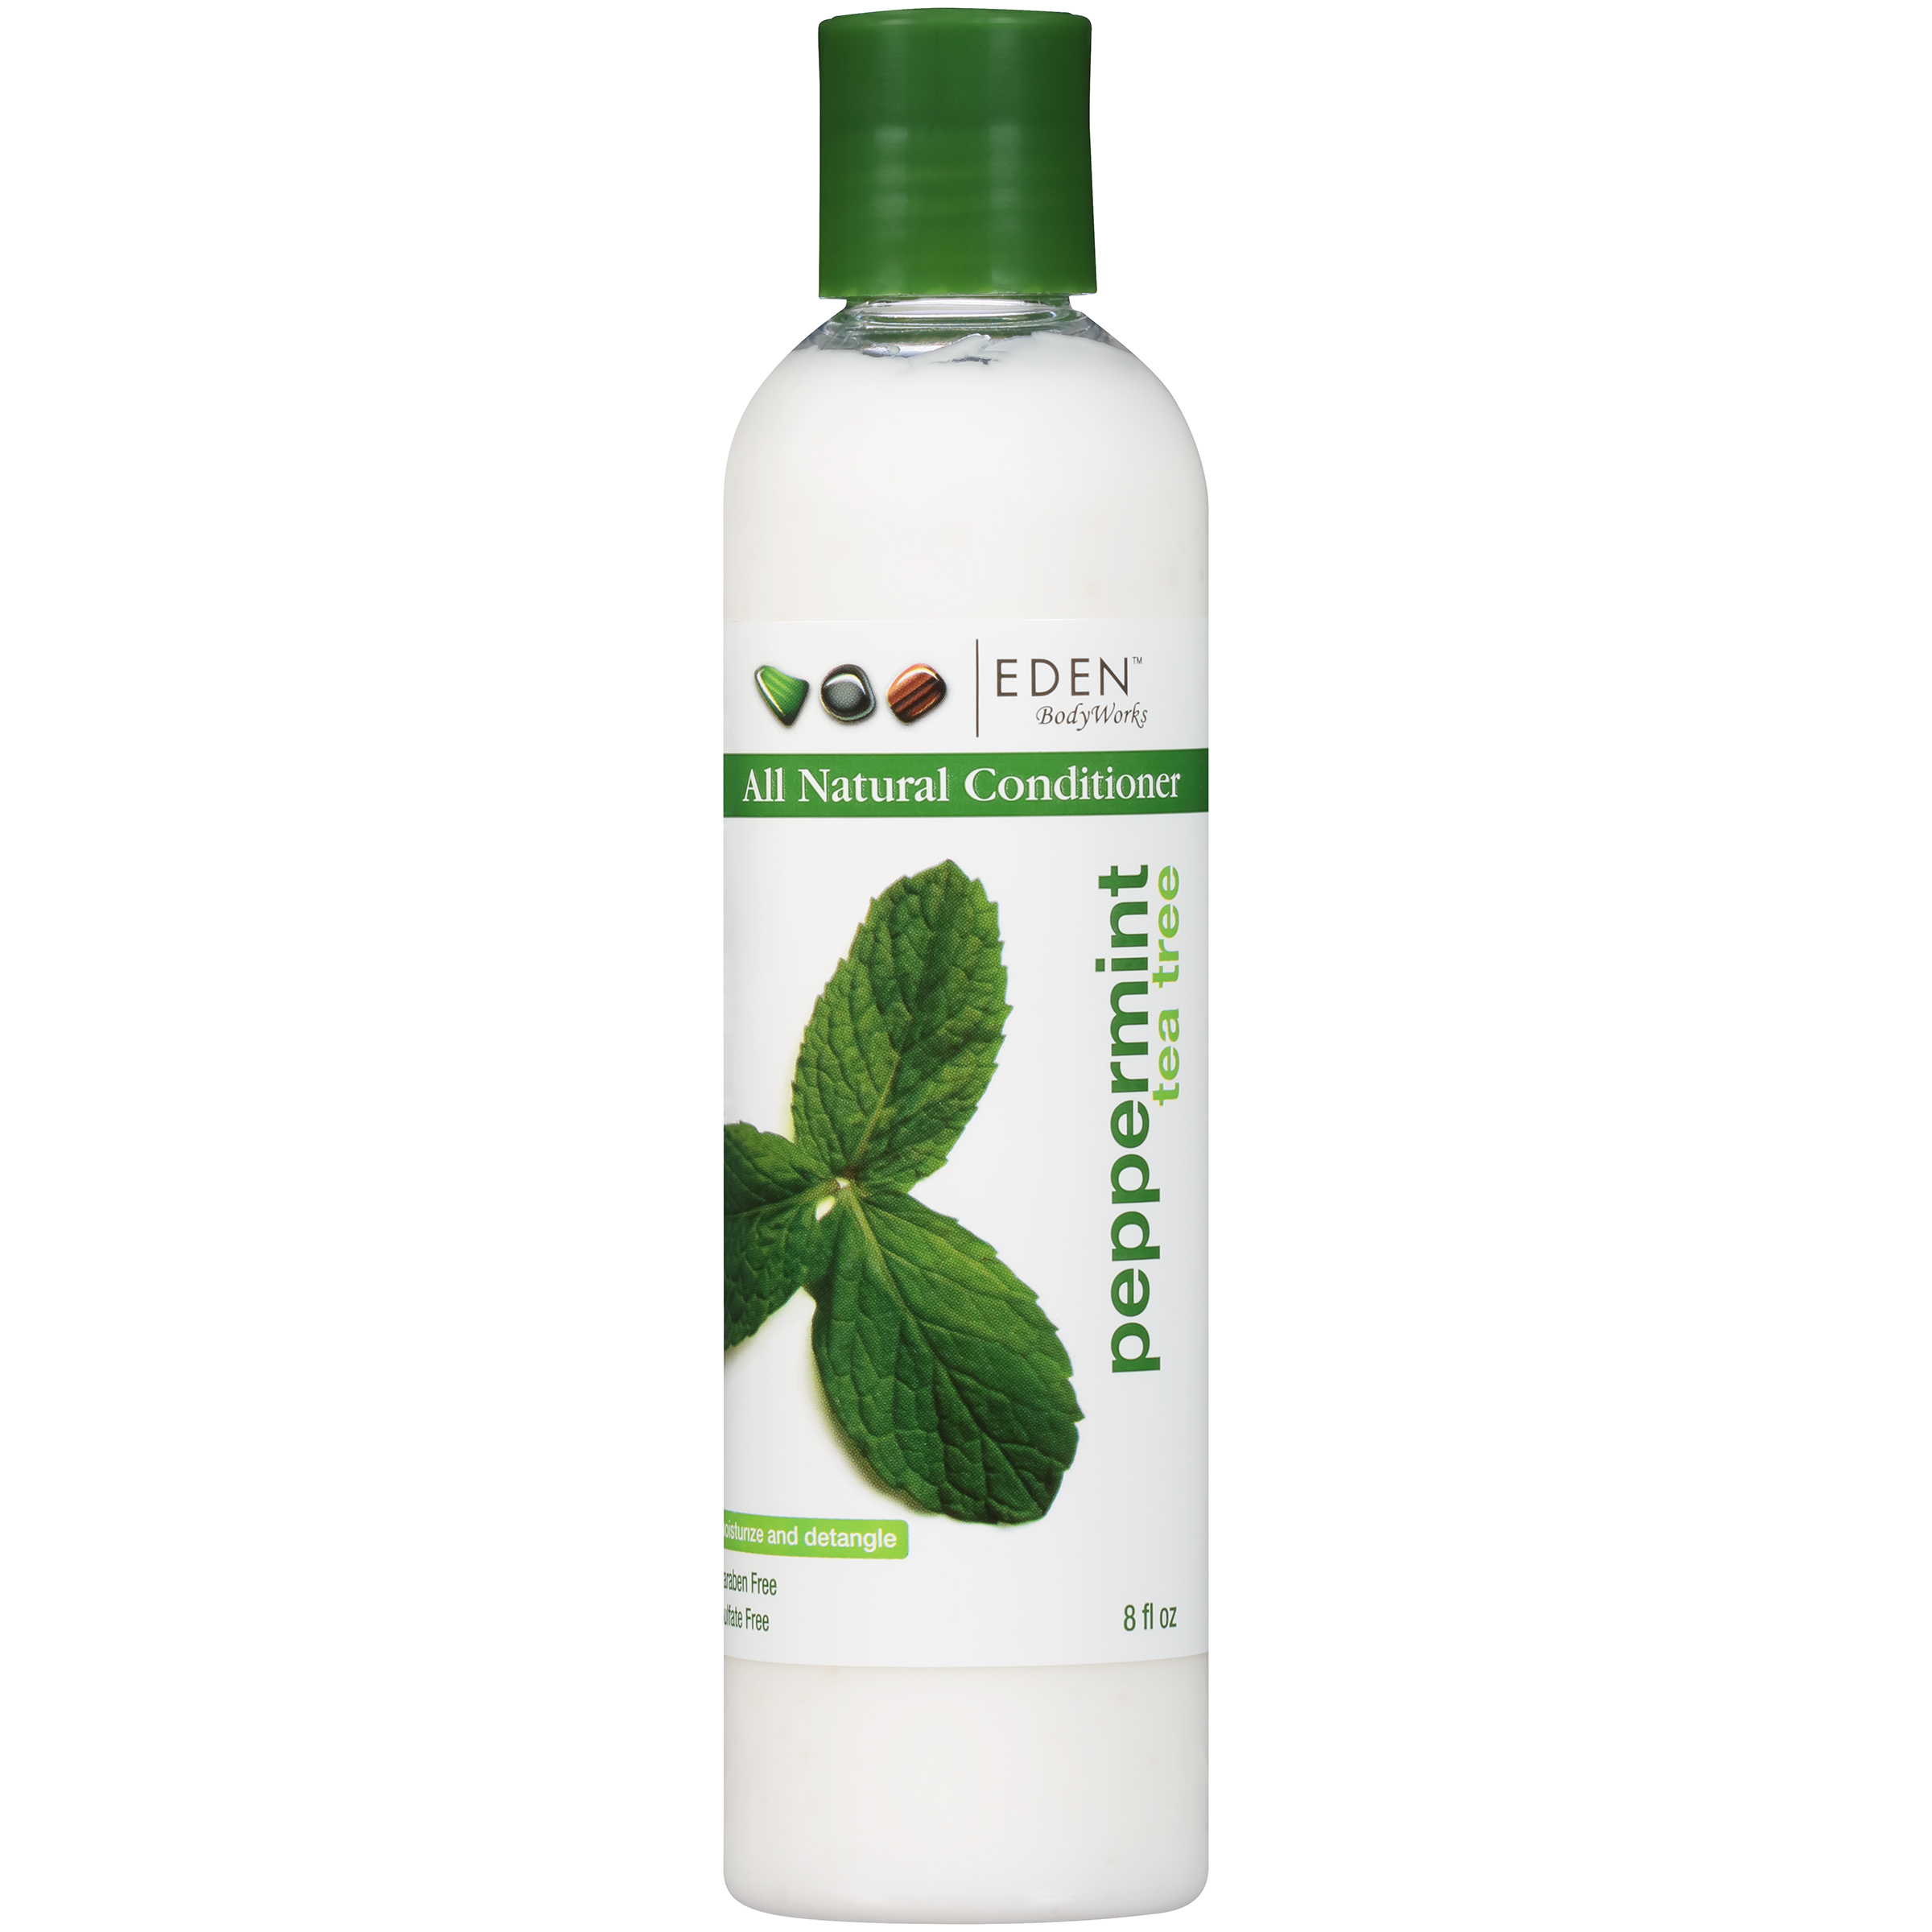 EDEN BodyWorks Peppermint Tea Tree All Natural Conditioner, 8 fl oz ...